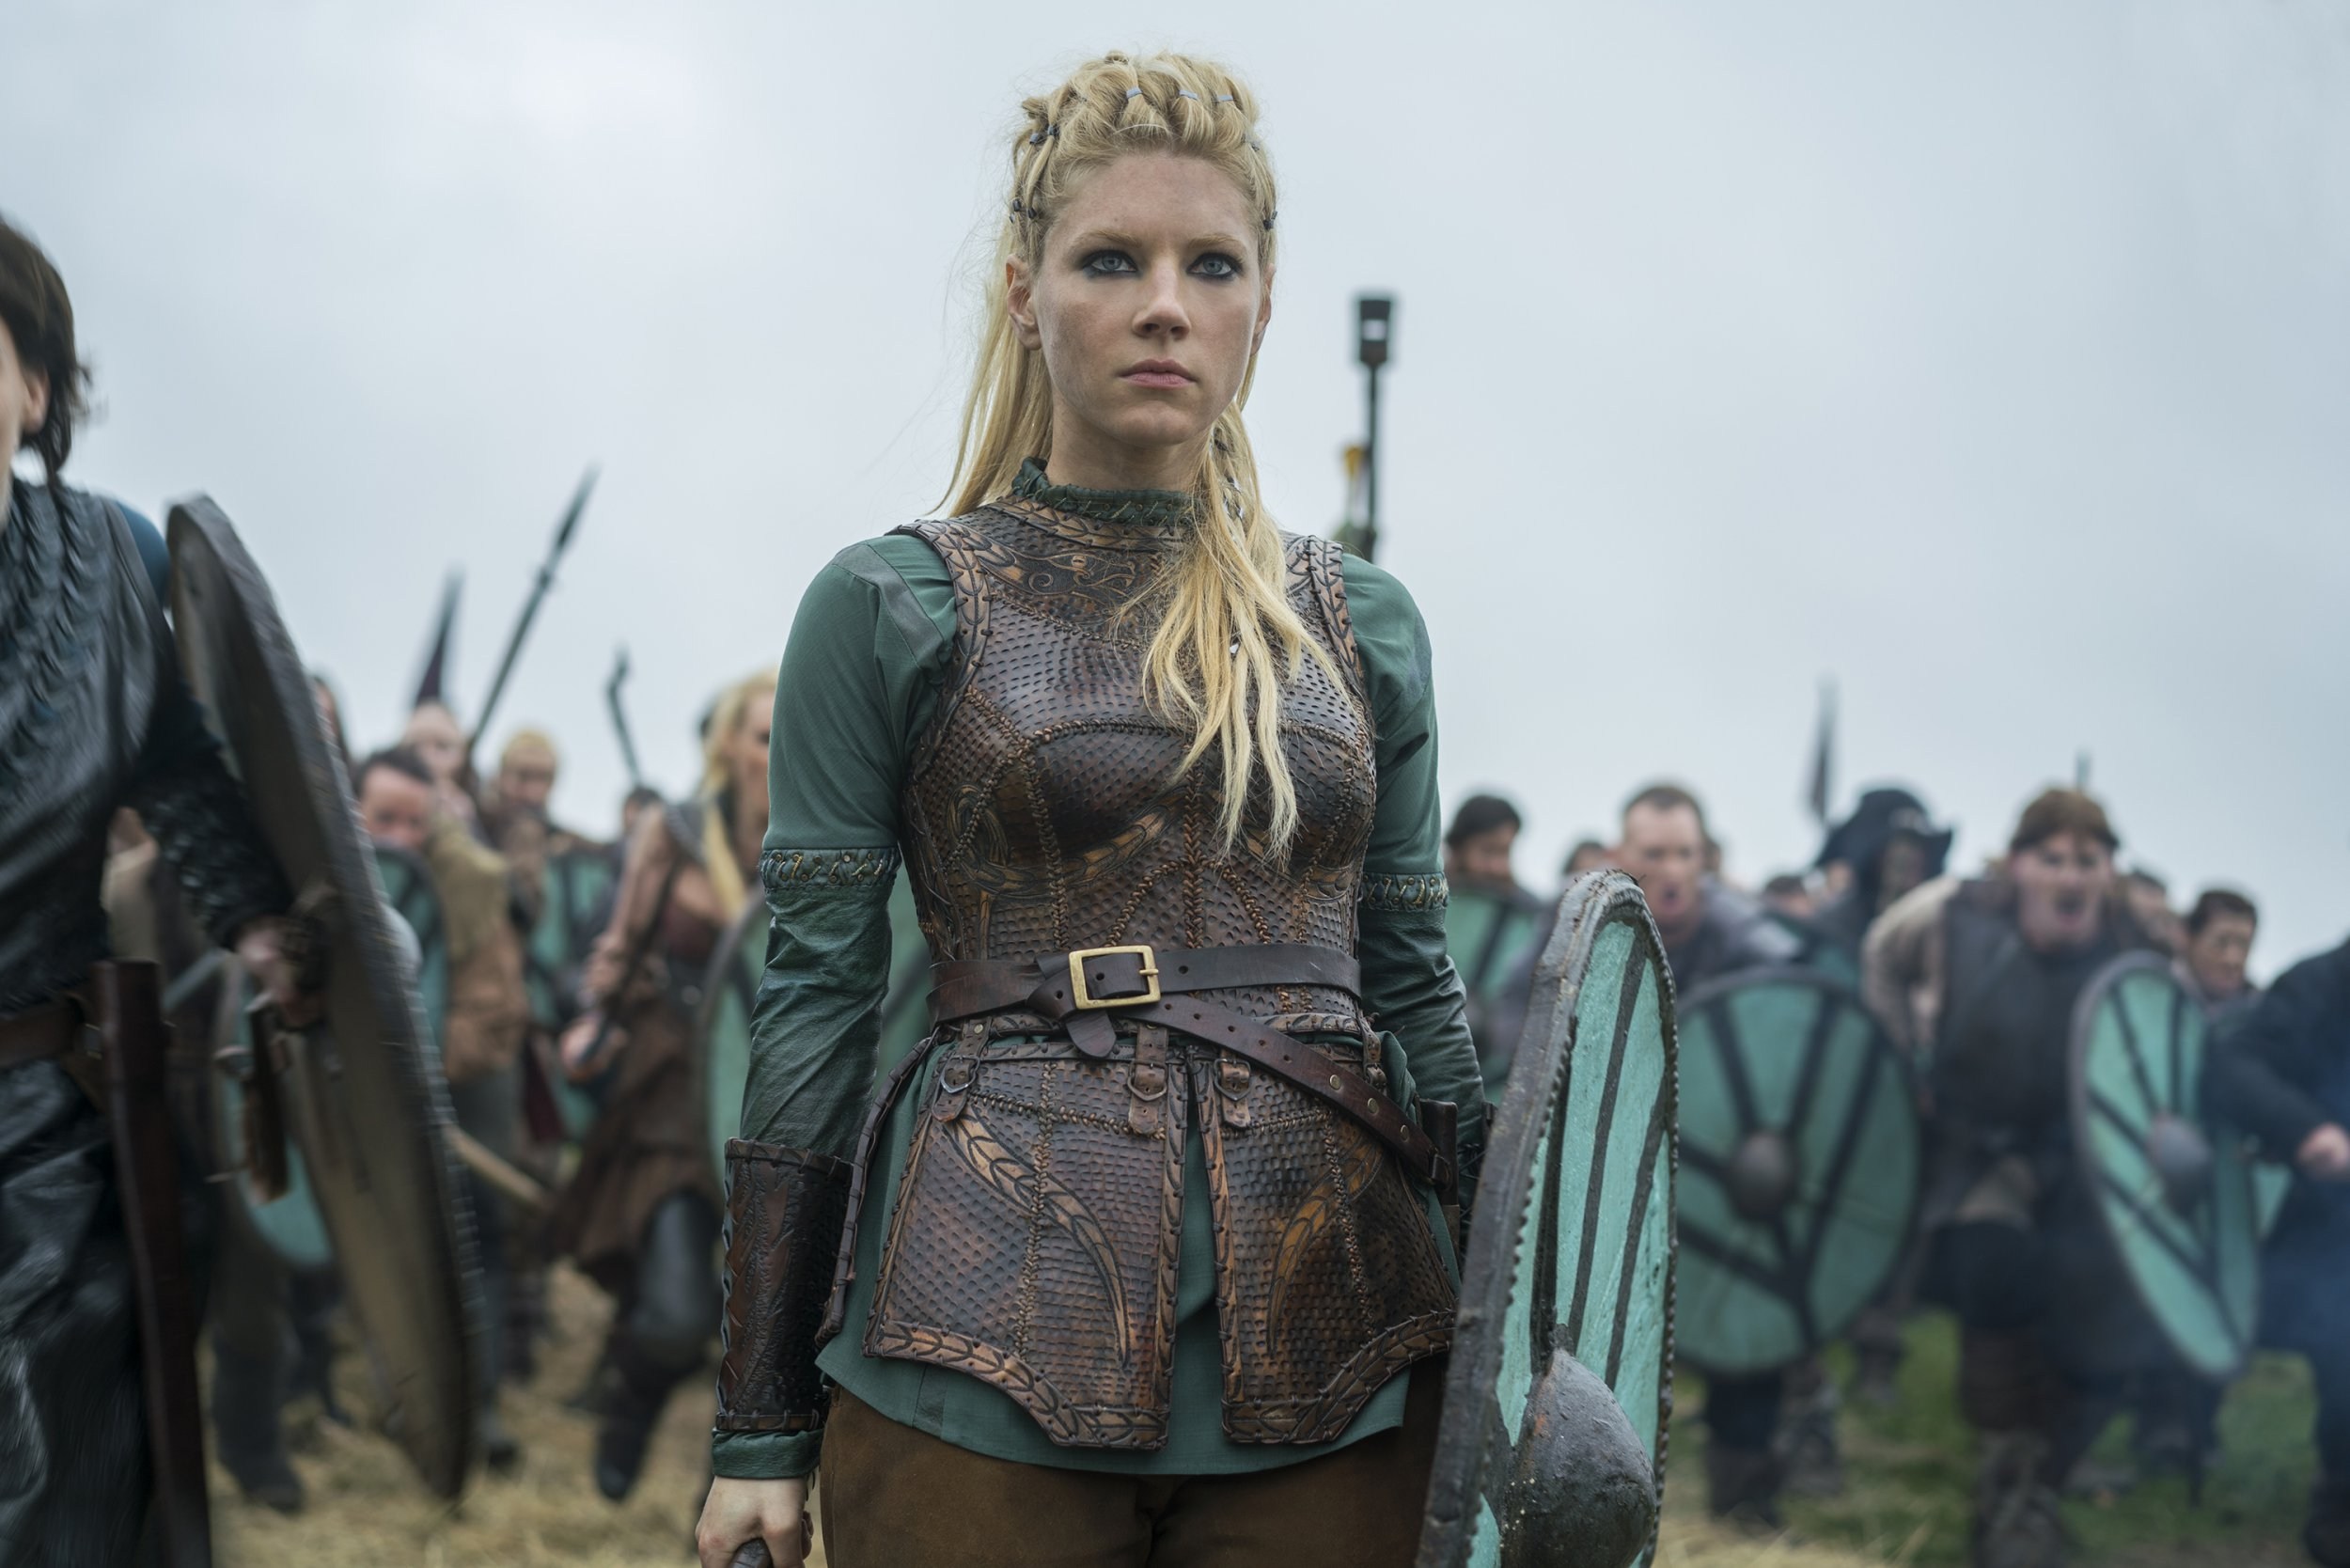 Katheryn Winnick pokes fun at herself watching her Vikings character on TV as she says she wants 'as many seasons as possible'